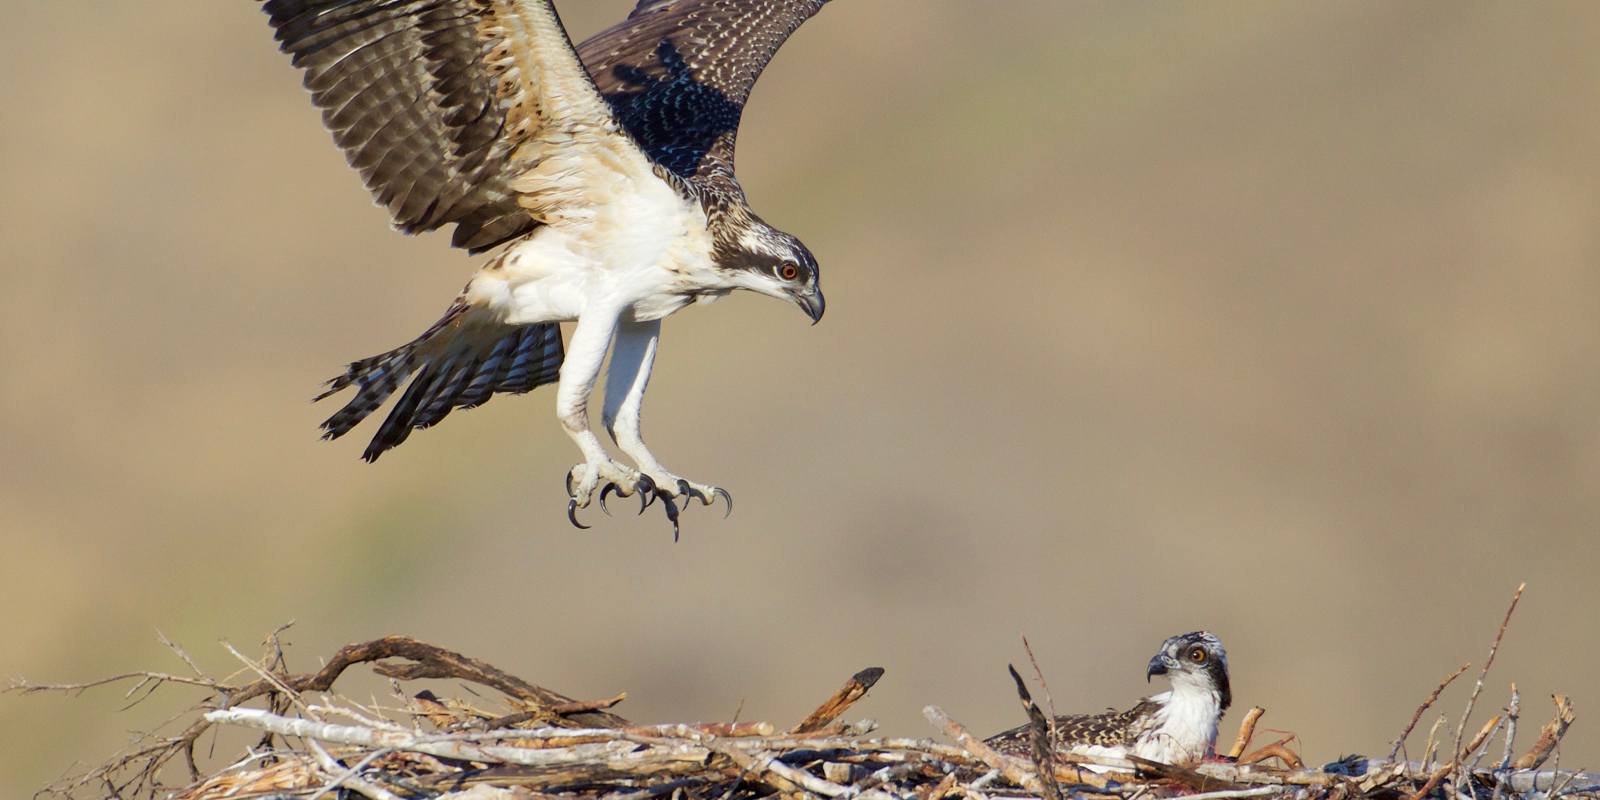 Unintentional Harm to Migratory Birds is Lawful under USFWS Proposed Rule